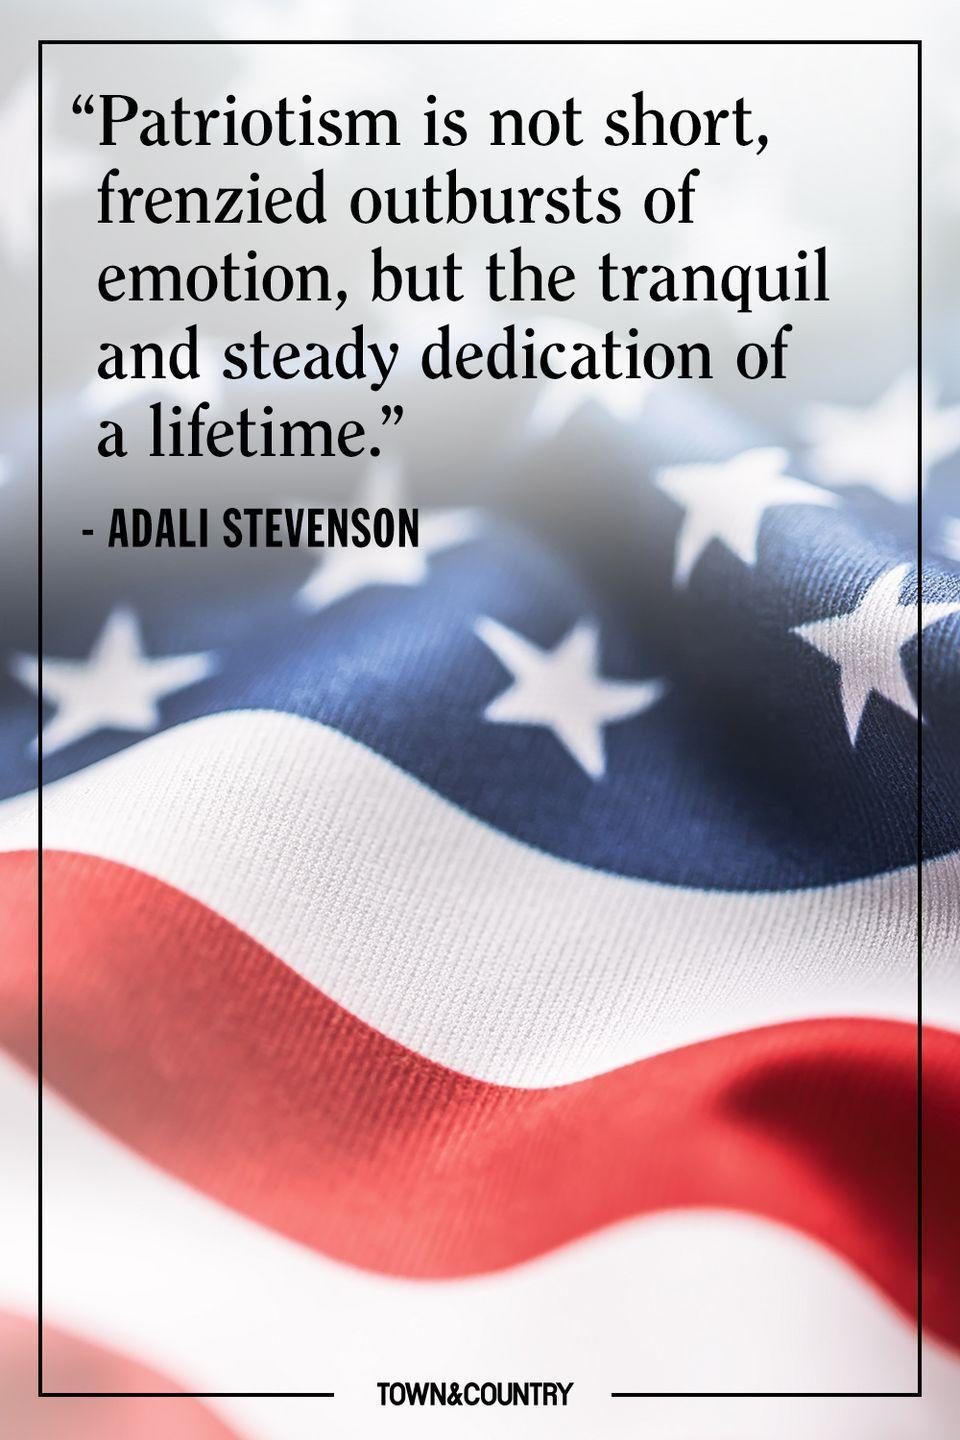 "<p>""Patriotism is not short, frenzied outburts of emotion, but the tranquil and steady dedication of a lifetime."" </p><p>– Adlai Stevenson</p>"